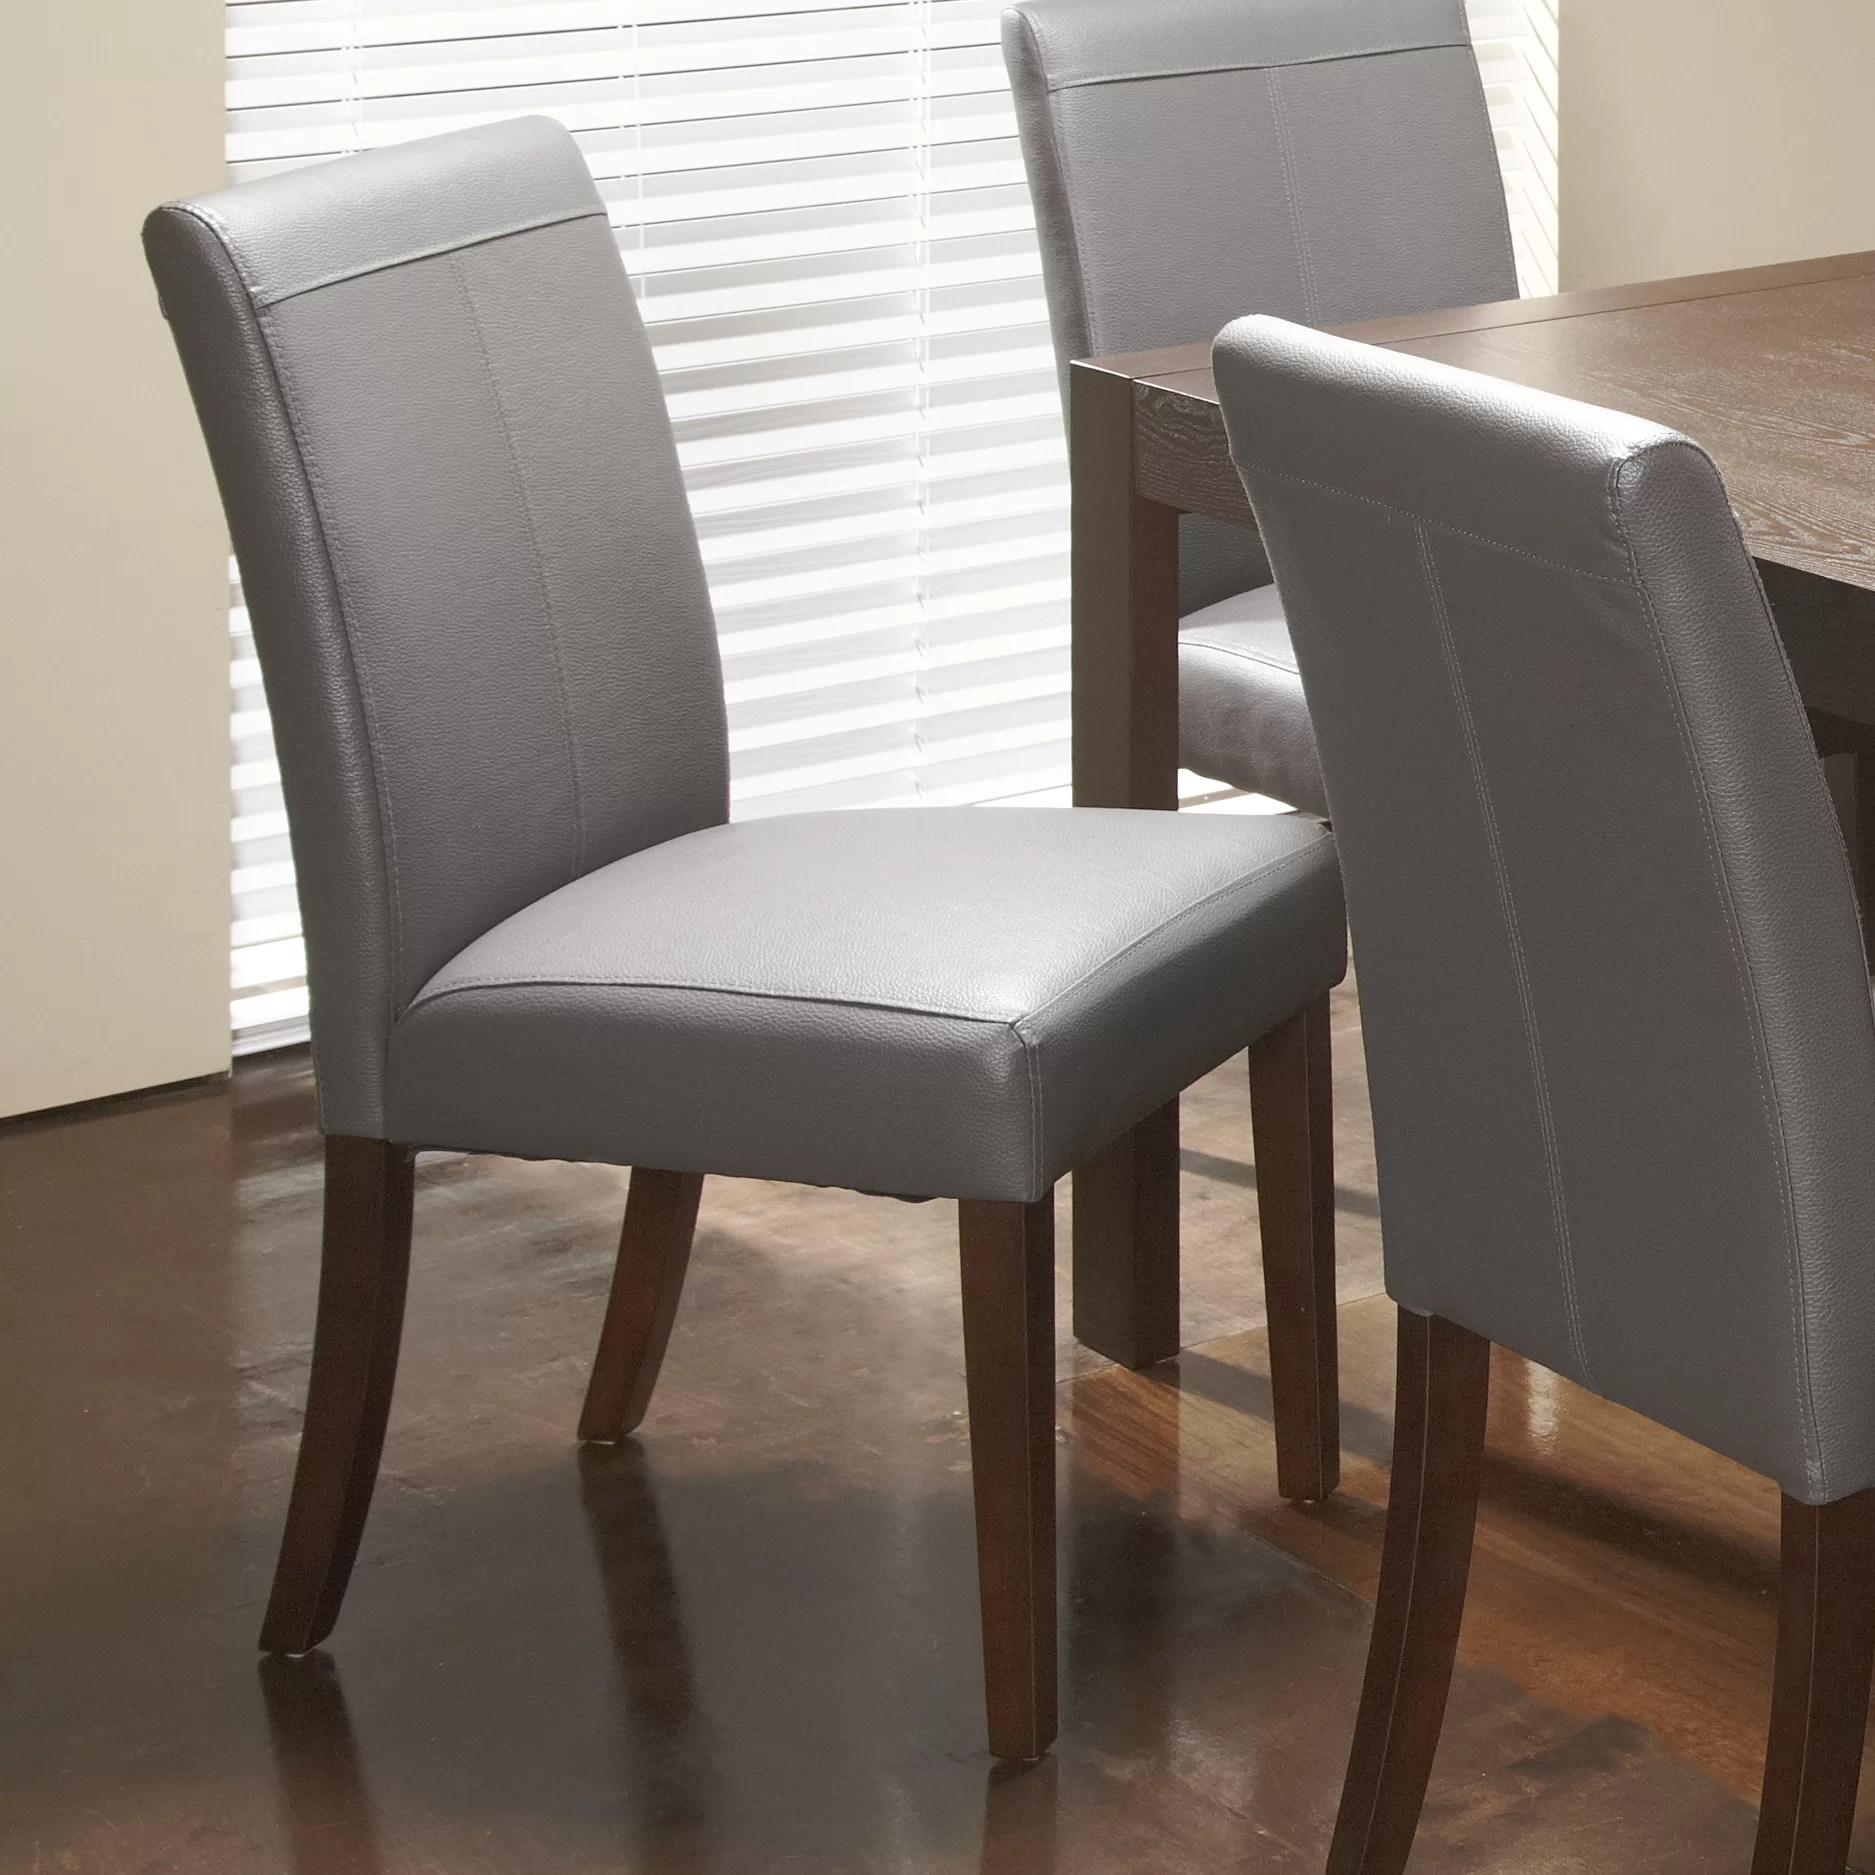 dining chairs canada upholstered antique wooden high chair chateau imports royal genuine leather